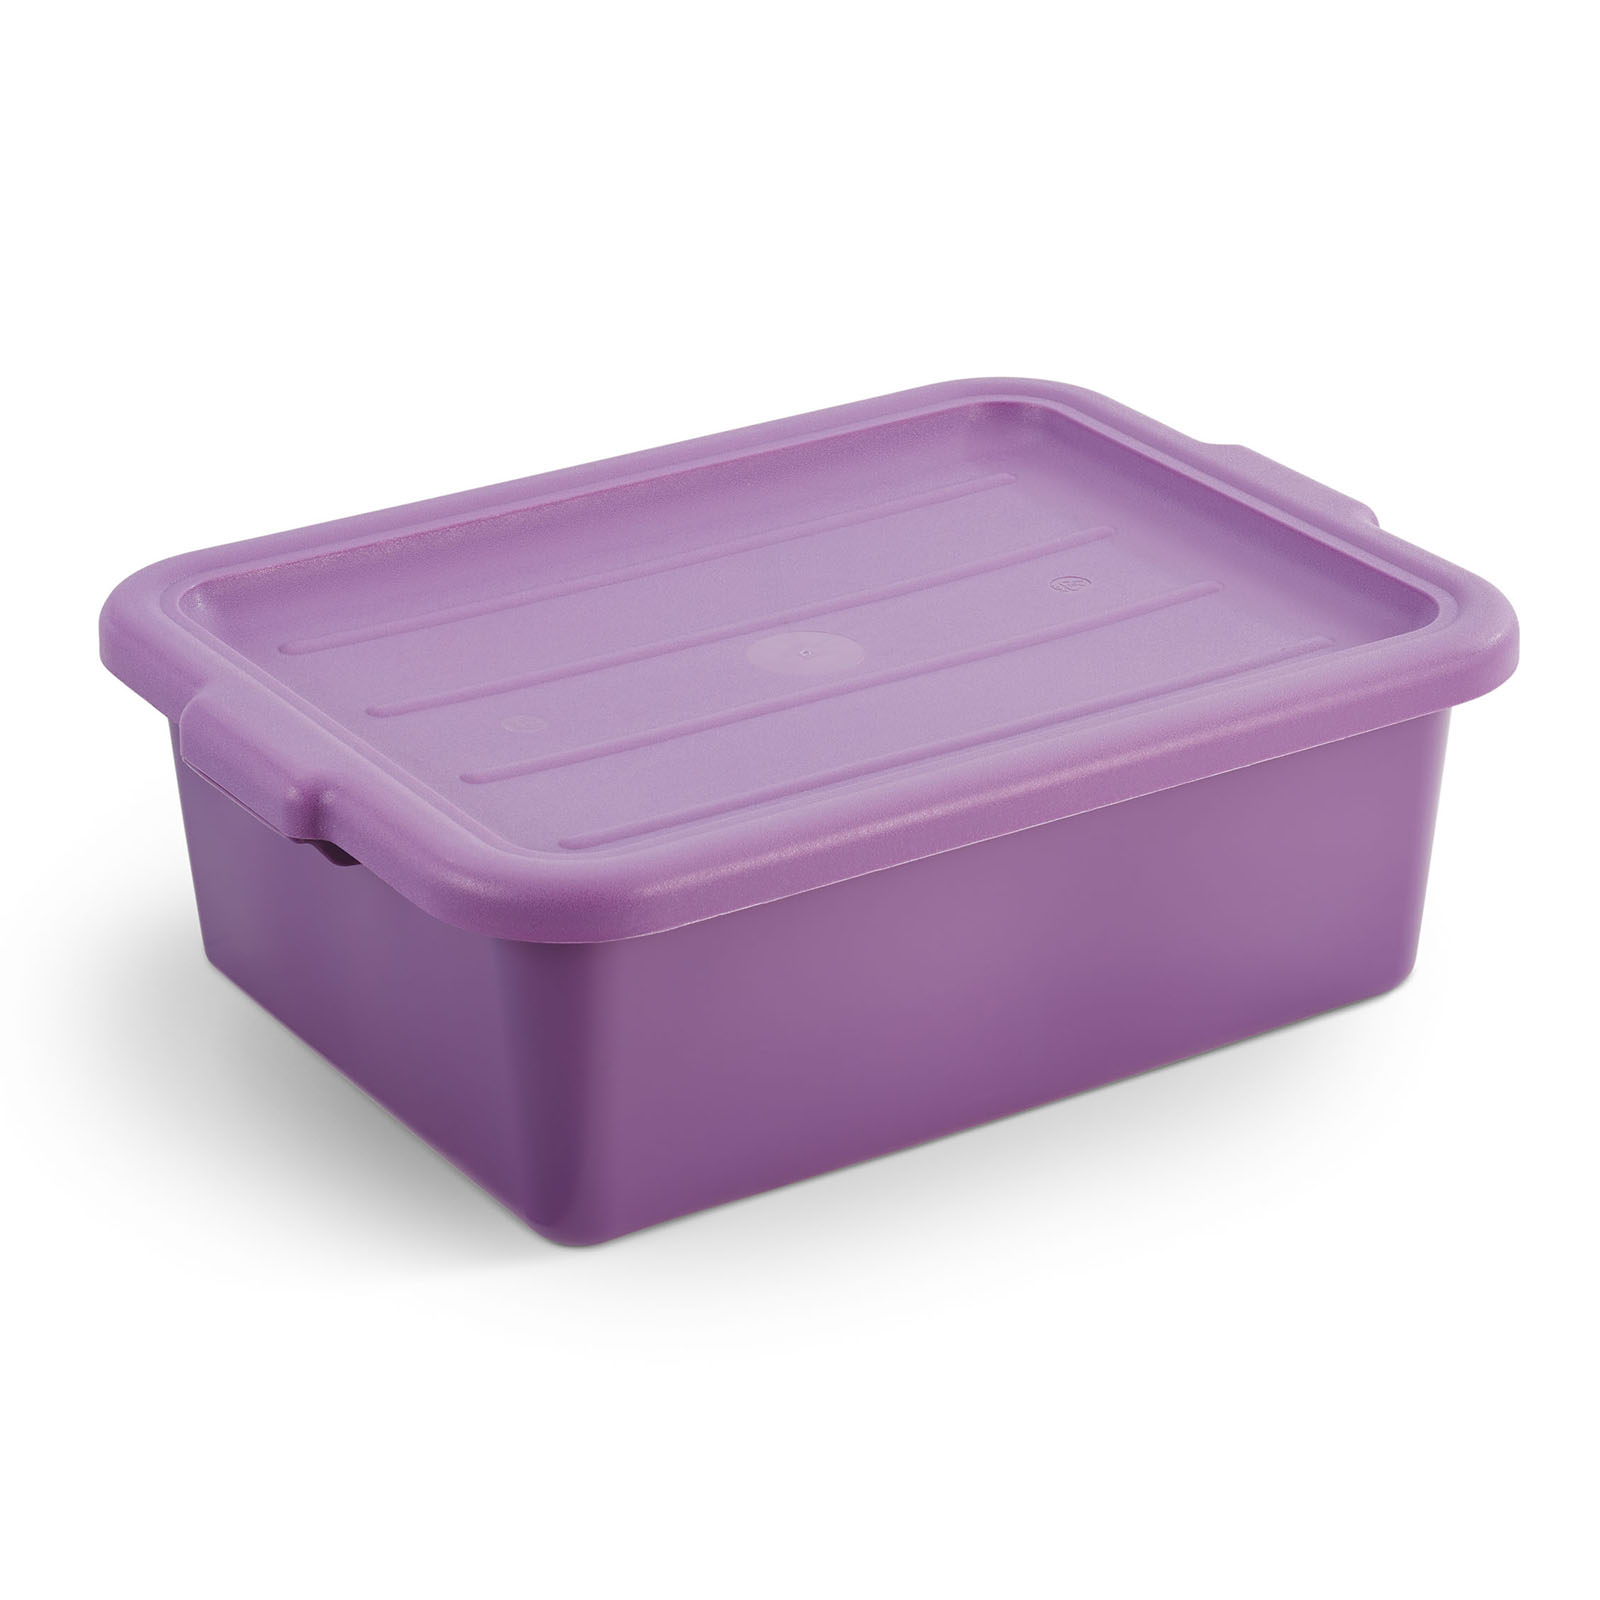 Vollrath 1527-C80 food storage container, box